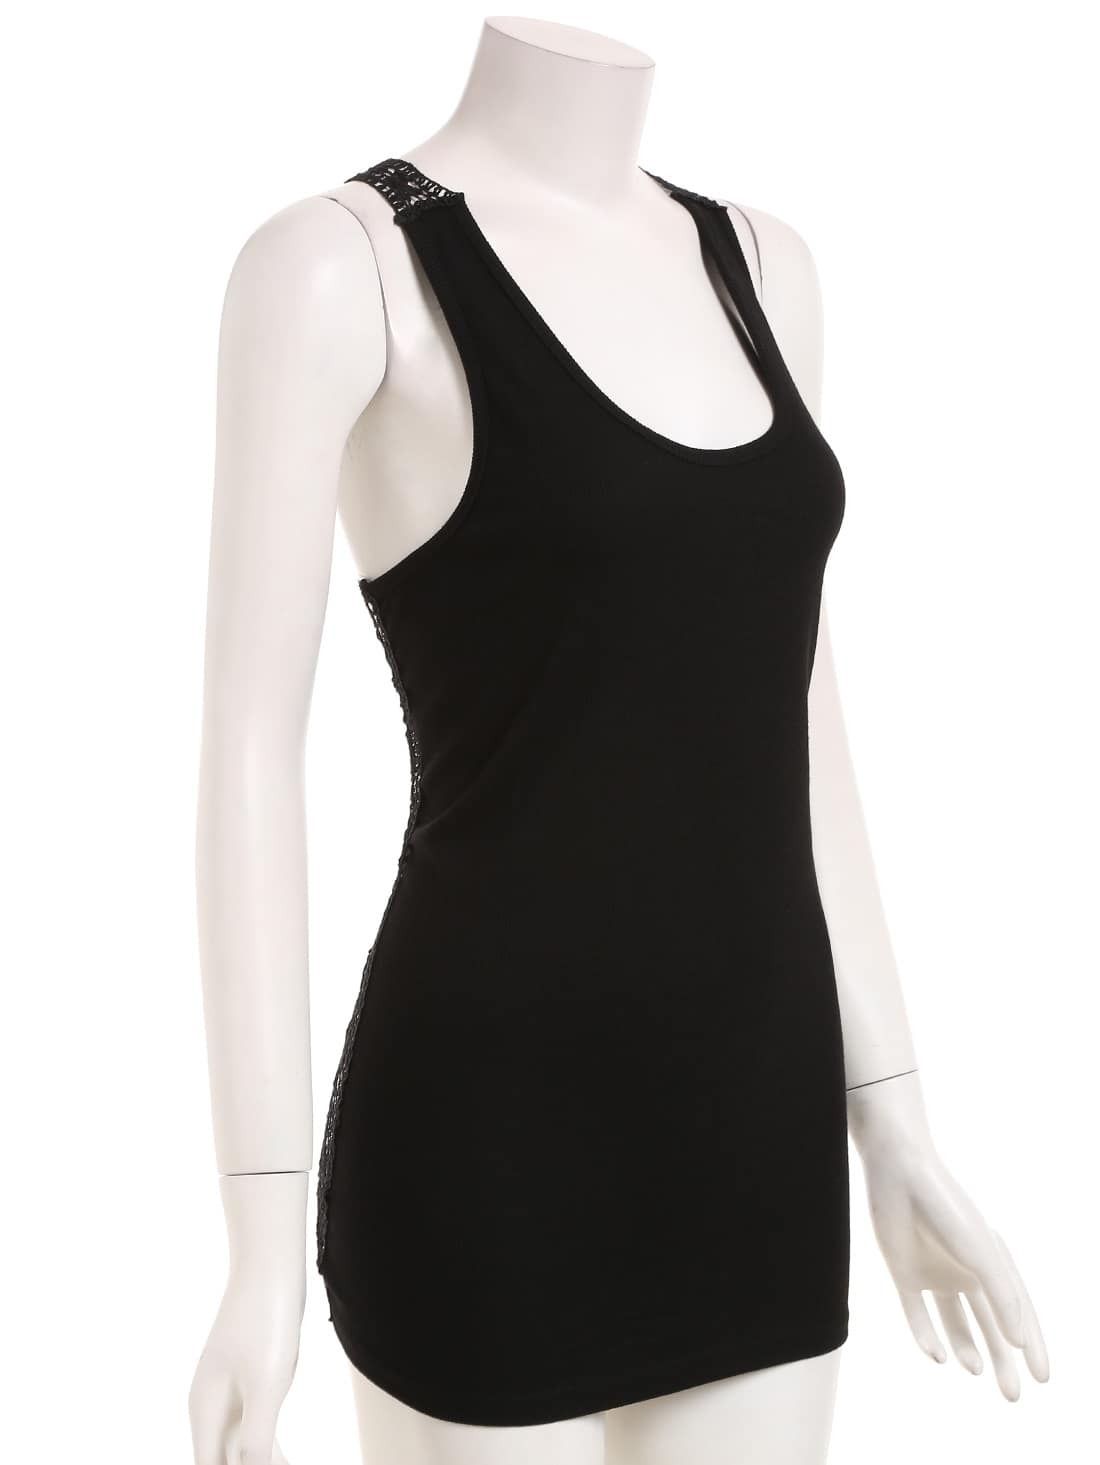 Find great deals on eBay for lace back tank top. Shop with confidence.